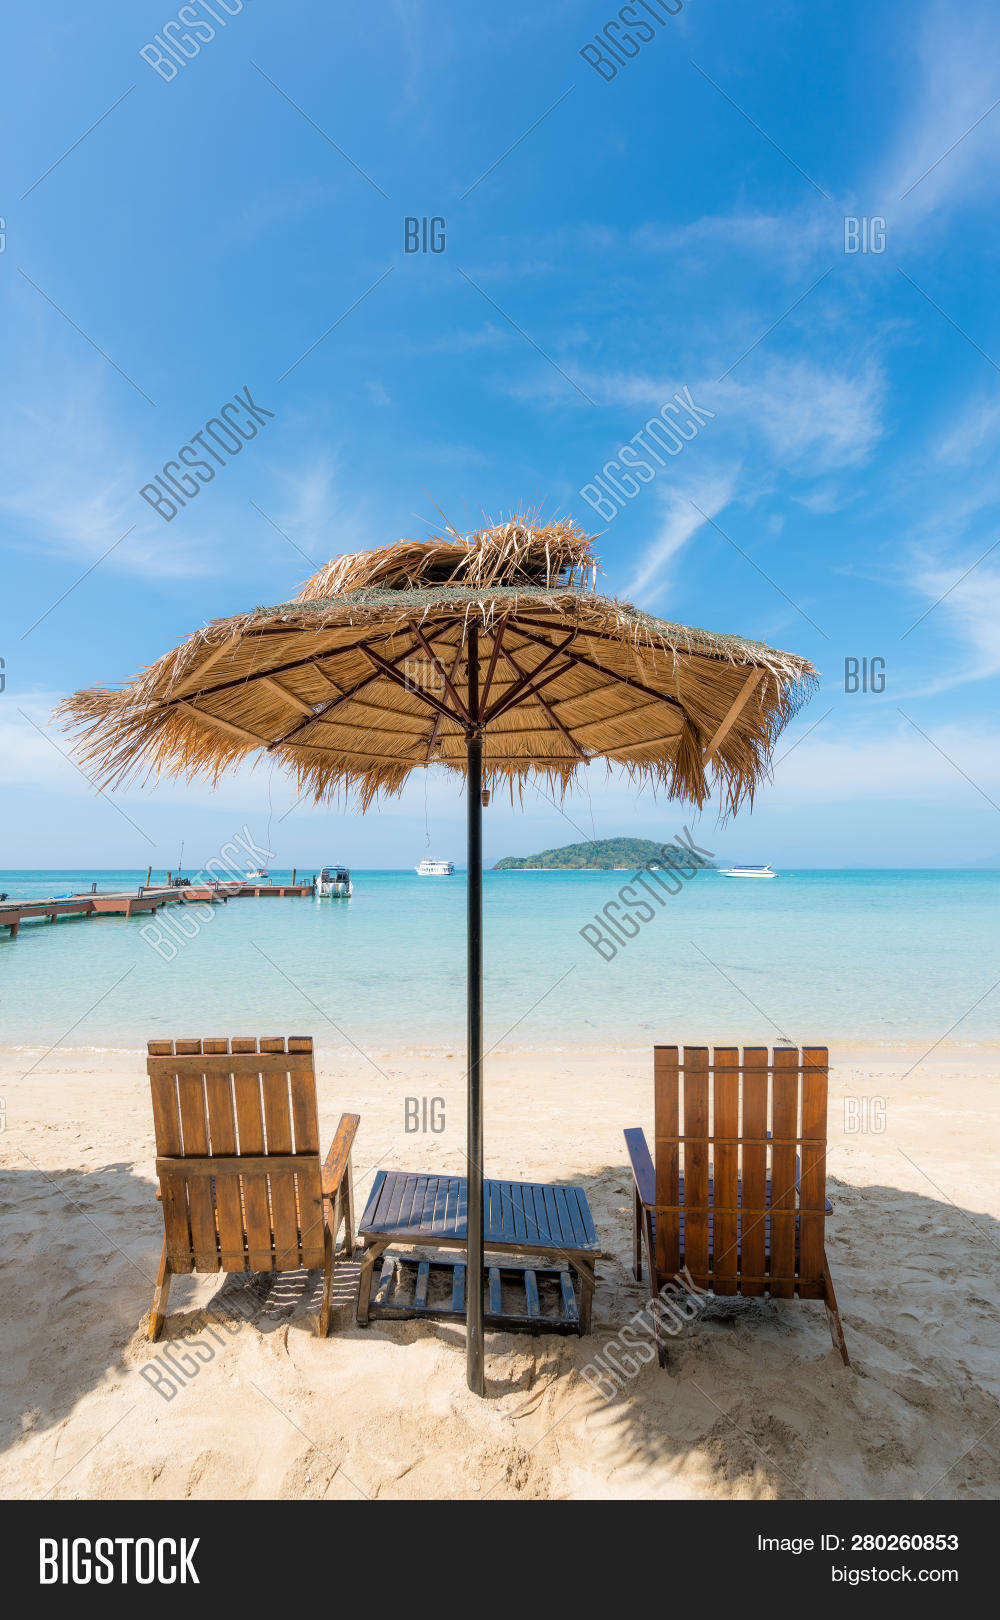 Beach Chairs With Umbrella Beach Chairs Umbrella Image Photo Free Trial Bigstock